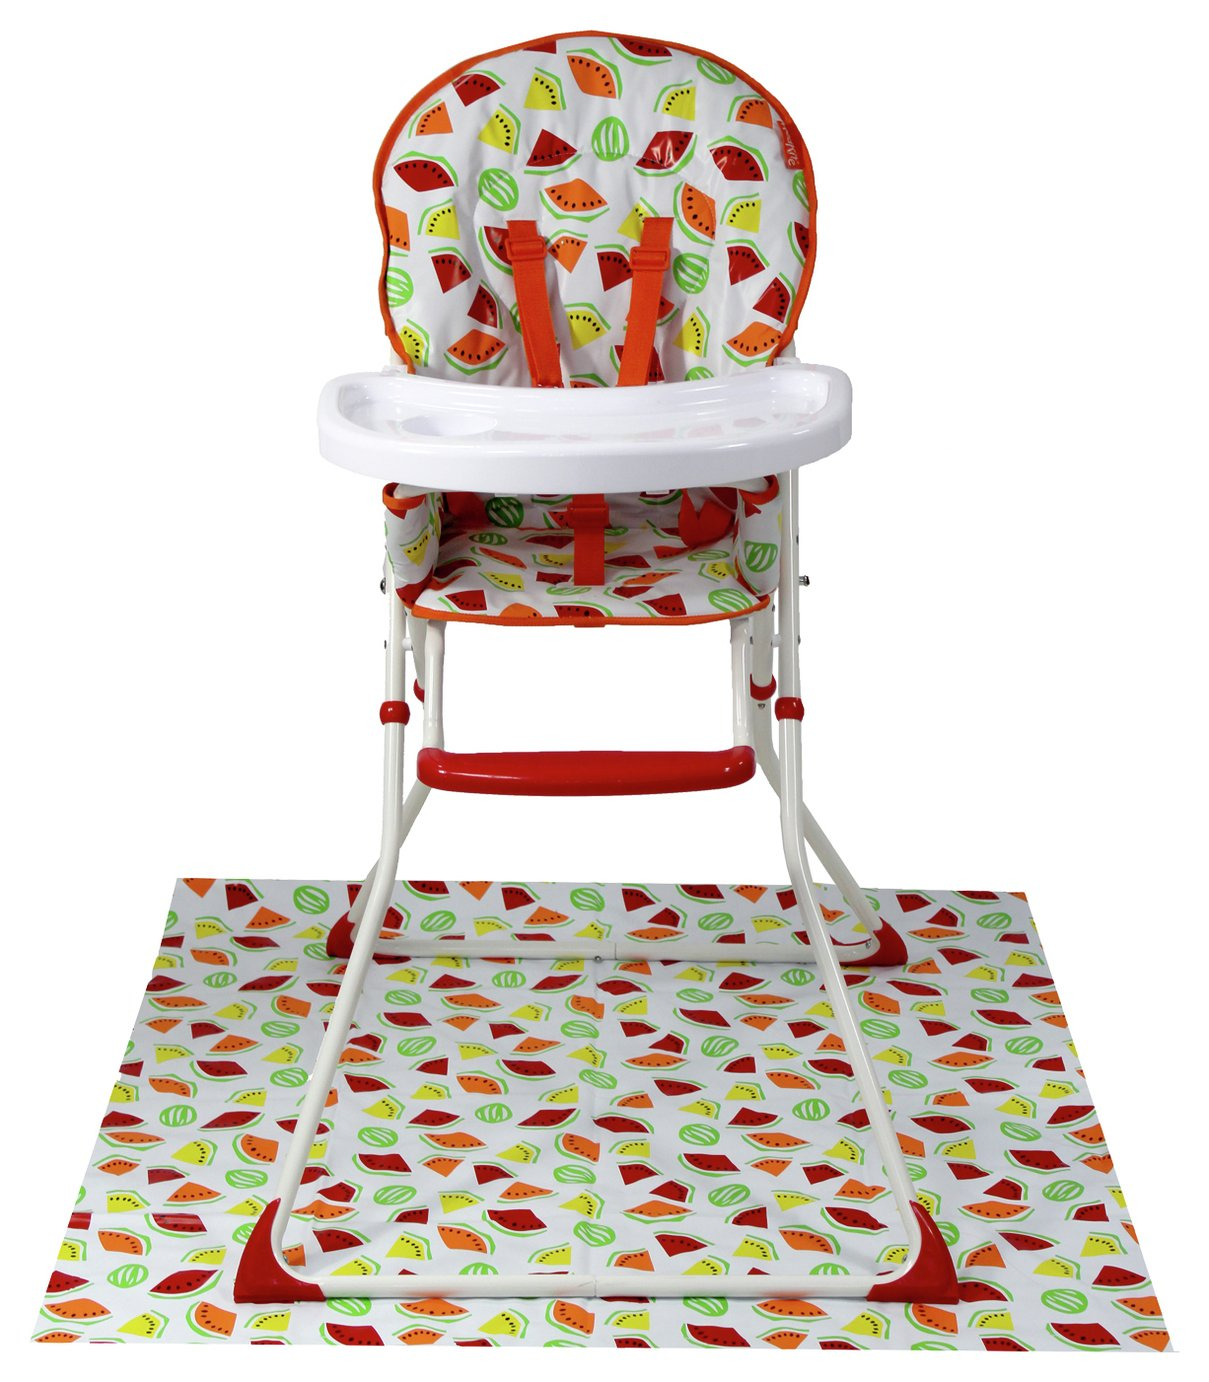 Red Kite Feed Me Compact Folding Highchair